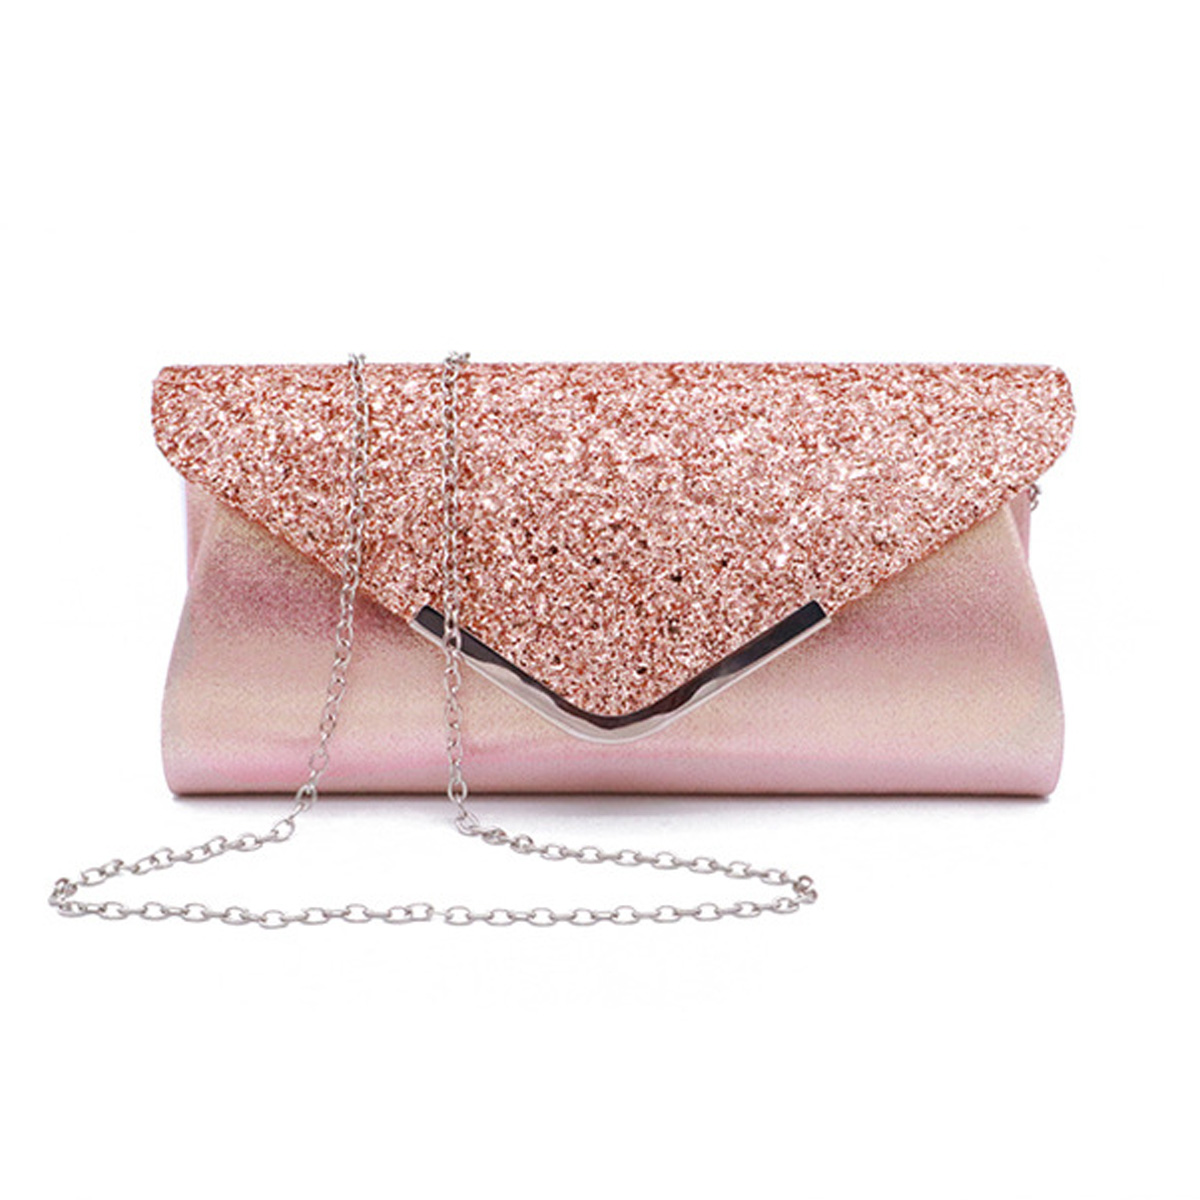 Chain Detail Shining Design Solid Evening Bag